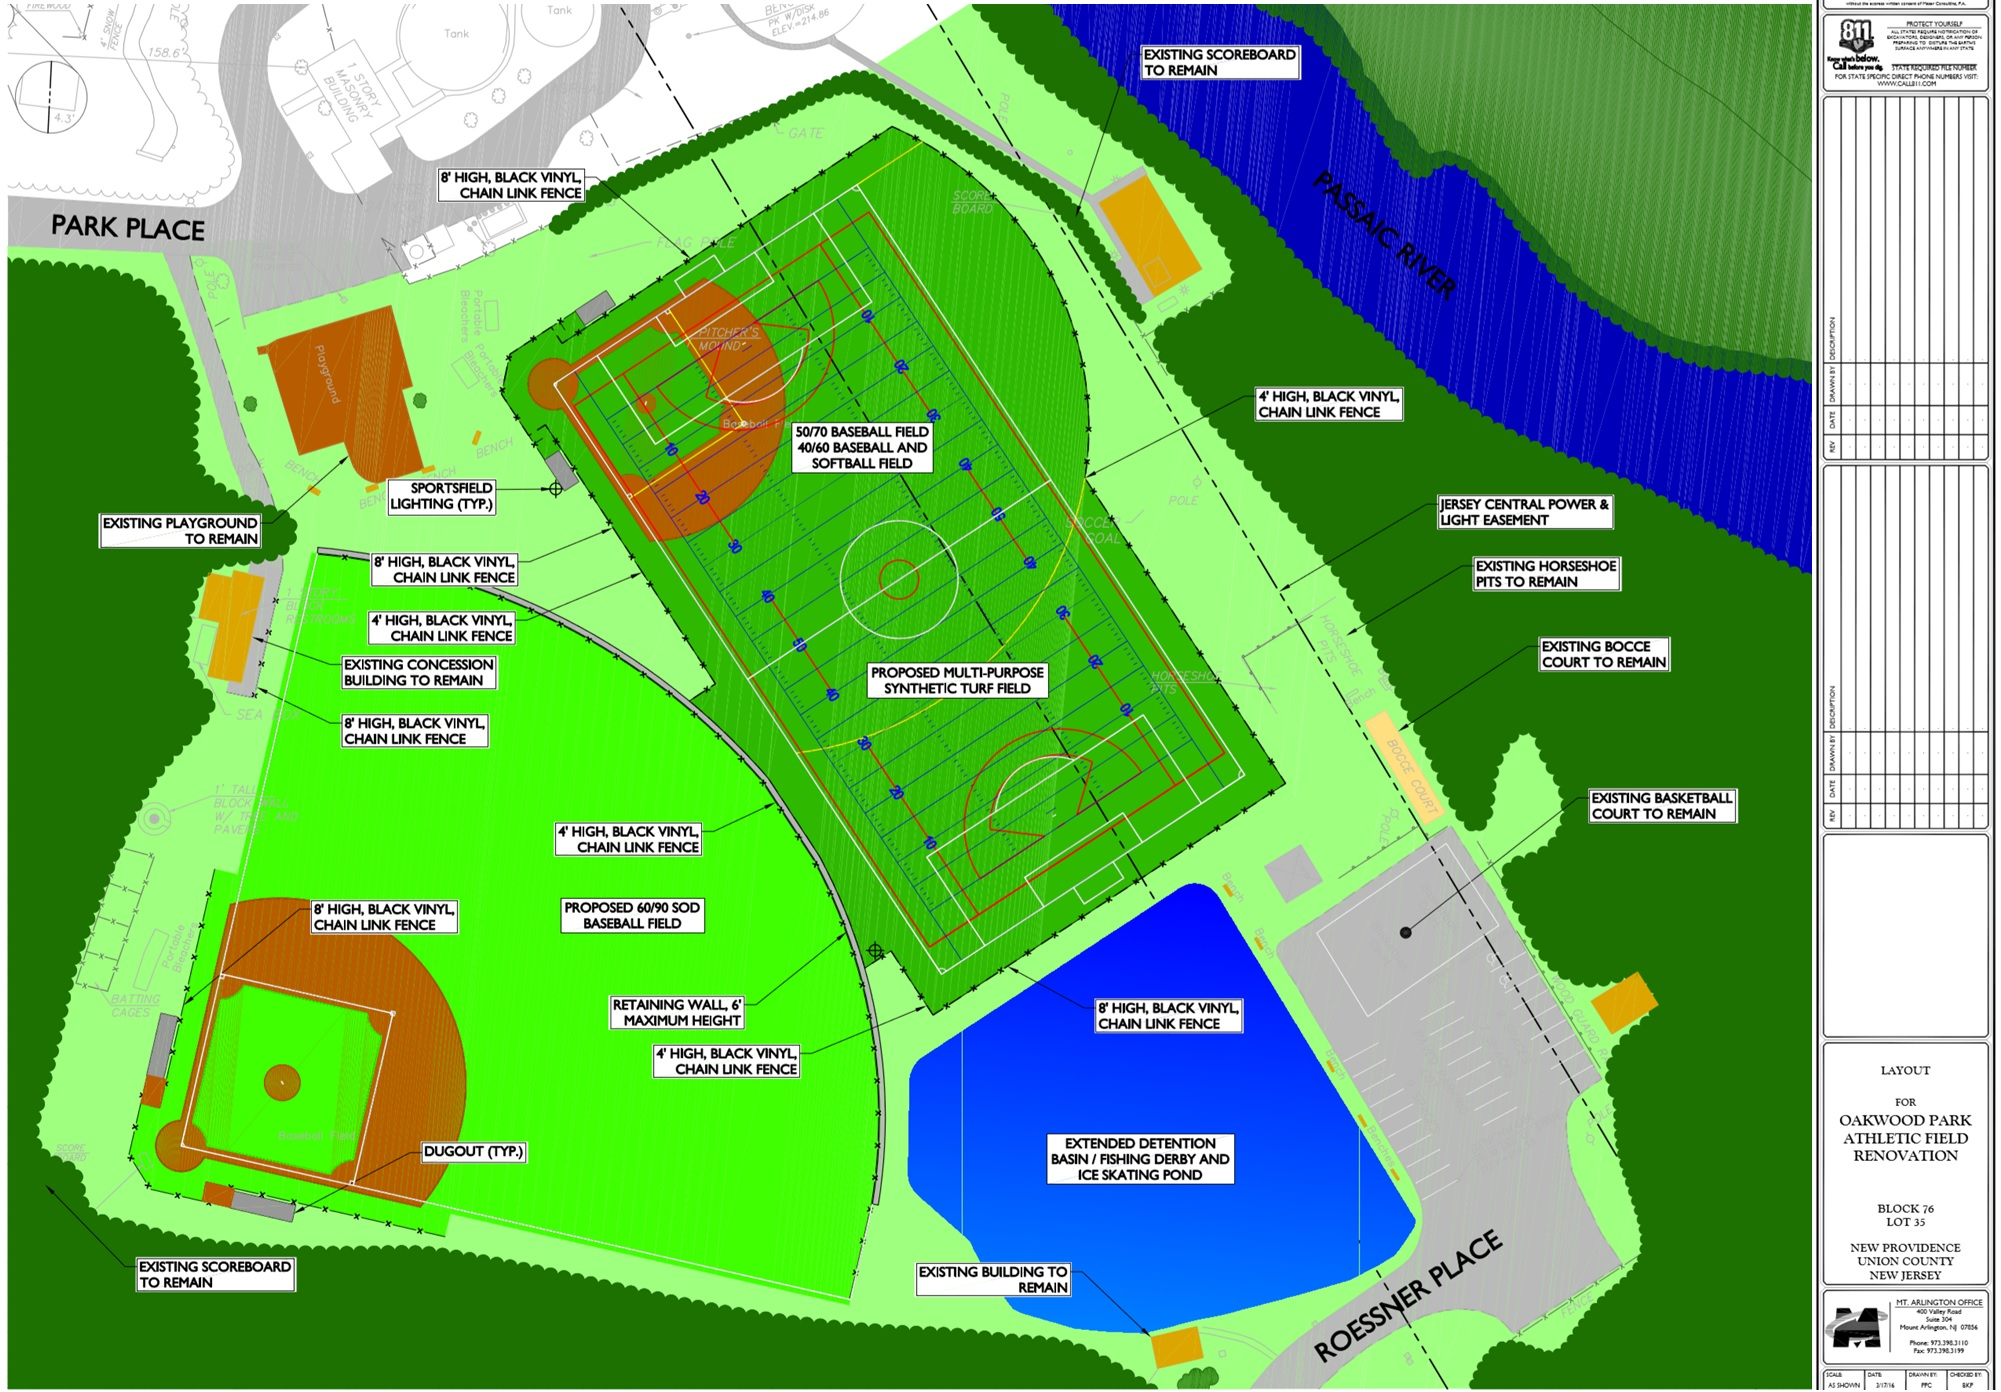 db367f897dec8fc5b8a4_Oakwood_Park_Final_Design_Layout_April_2016.jpg